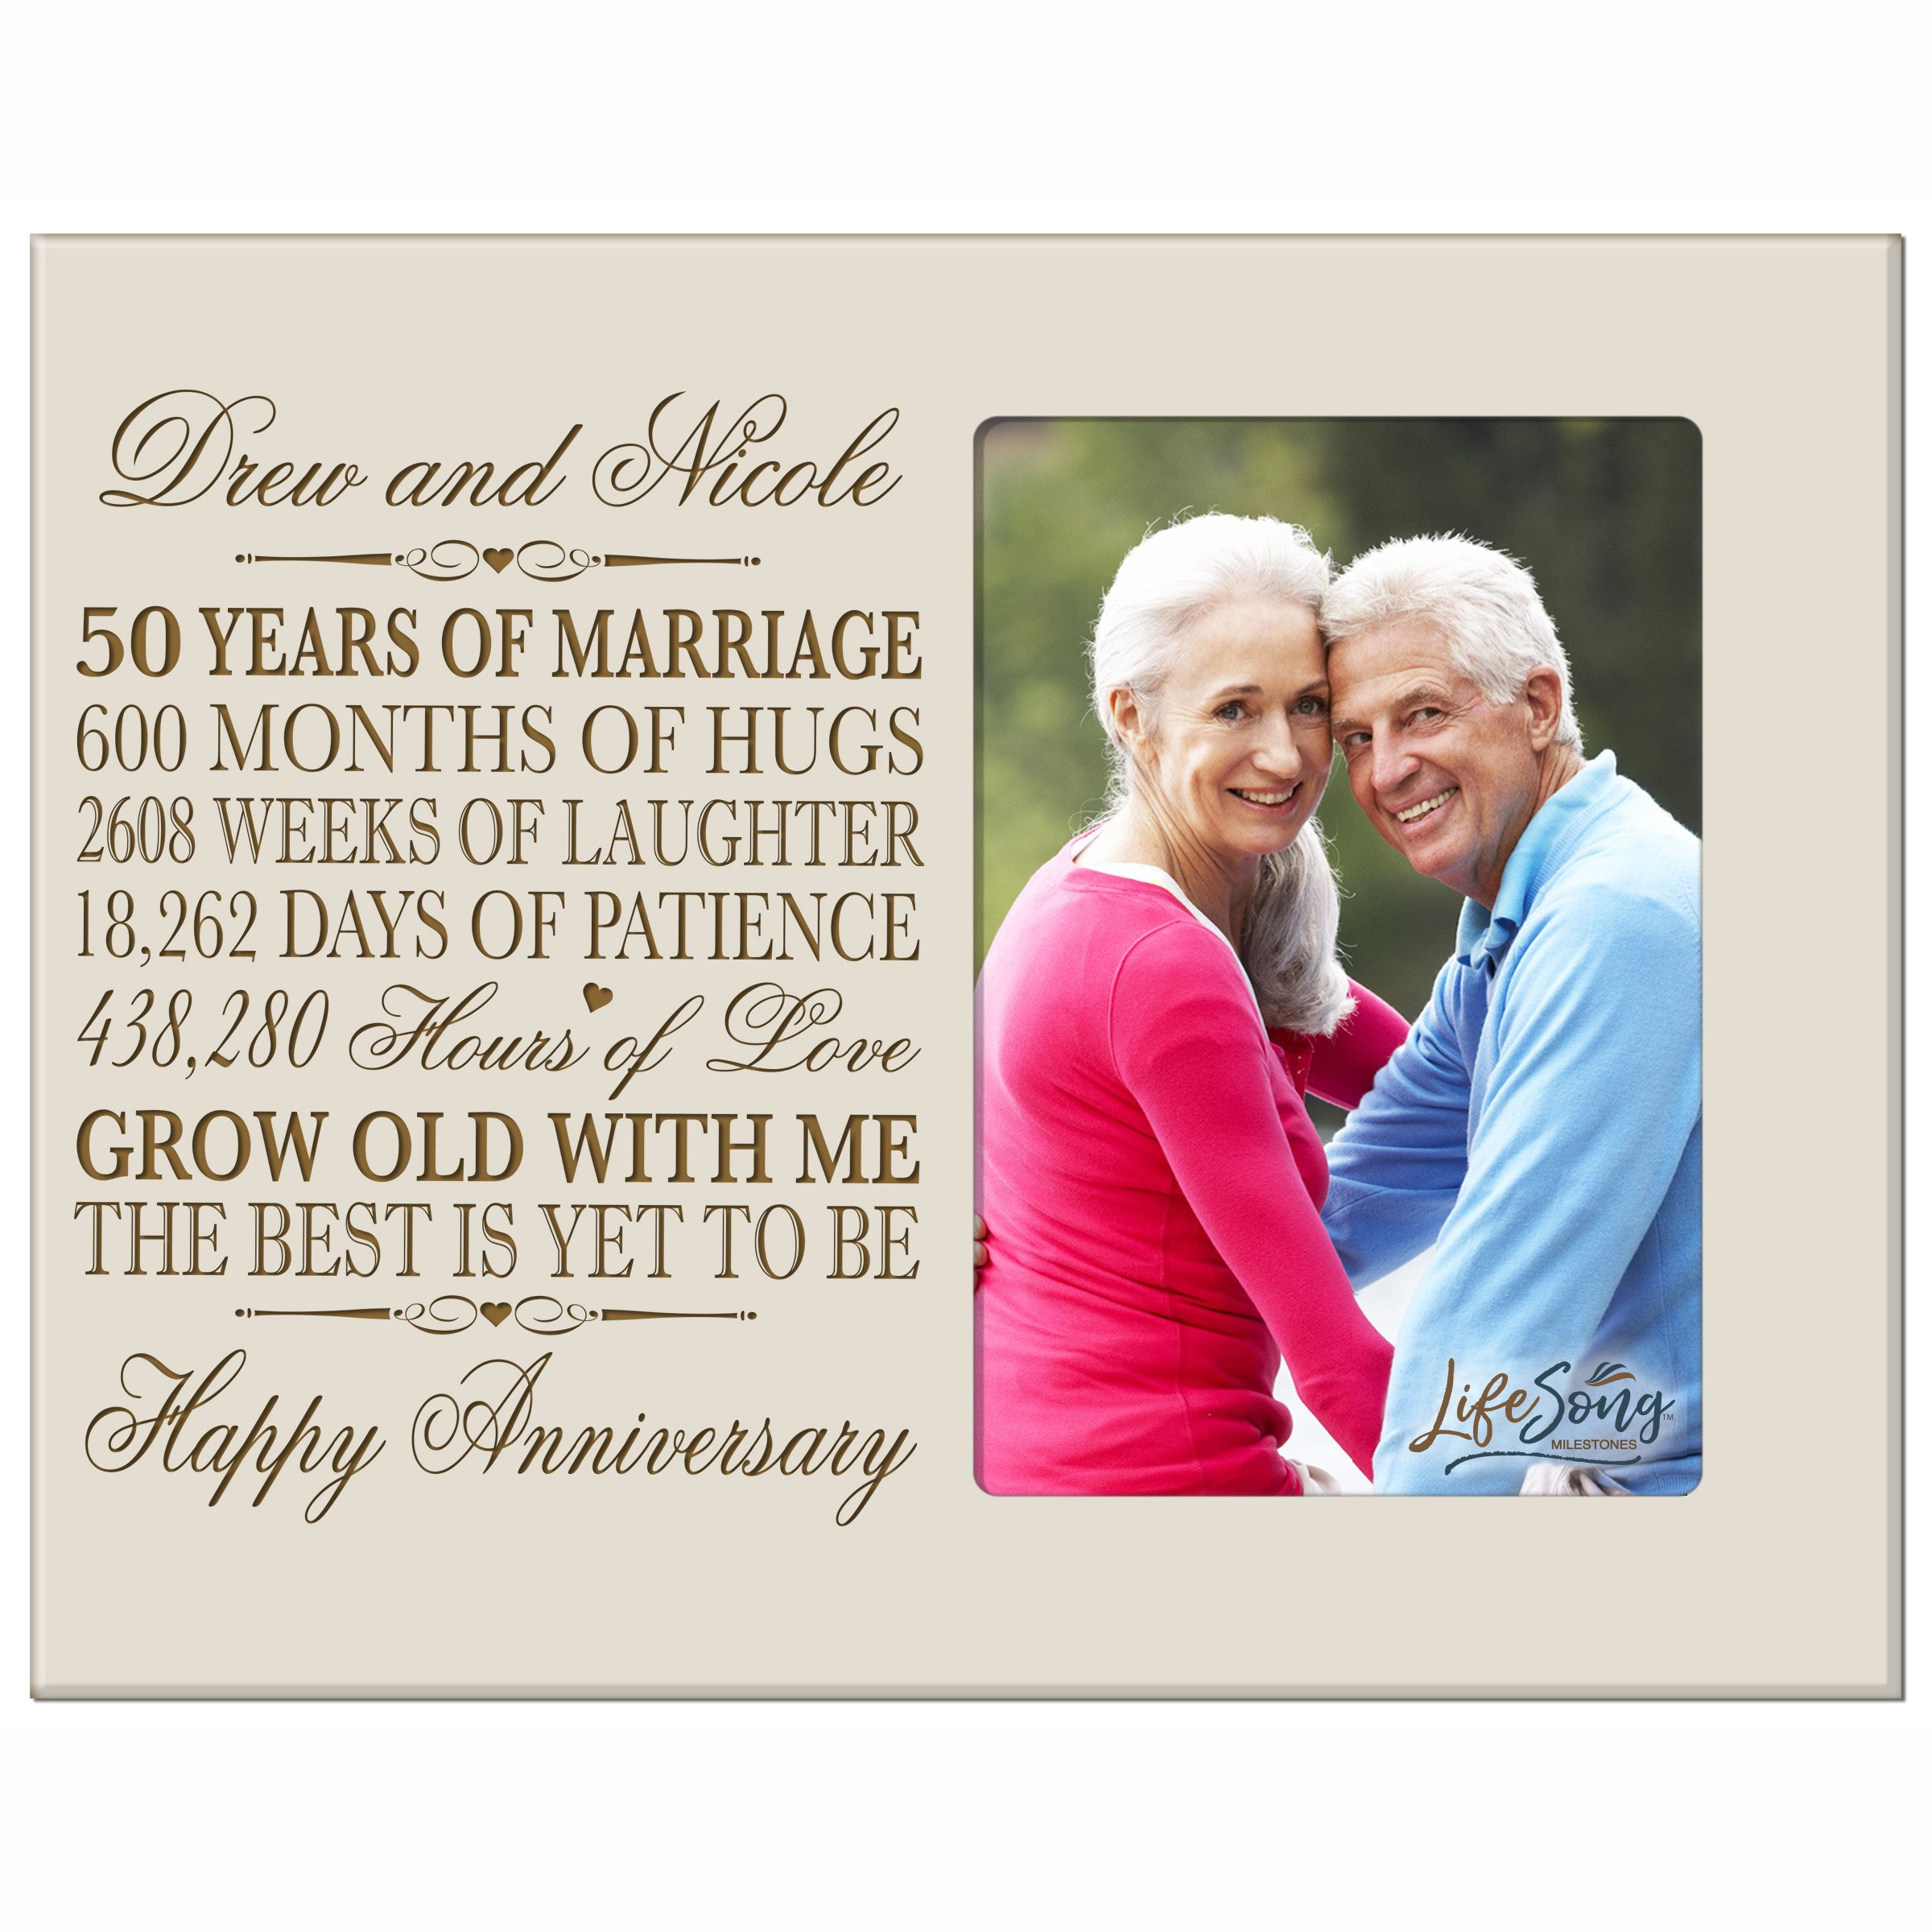 LifeSong Milestones Personalized 50th Year Wedding for Couple Custom Engraved Wedding Frame Holds 1 4x6 Photo 8'' H X 10'' W (Ivory) by LifeSong Milestones